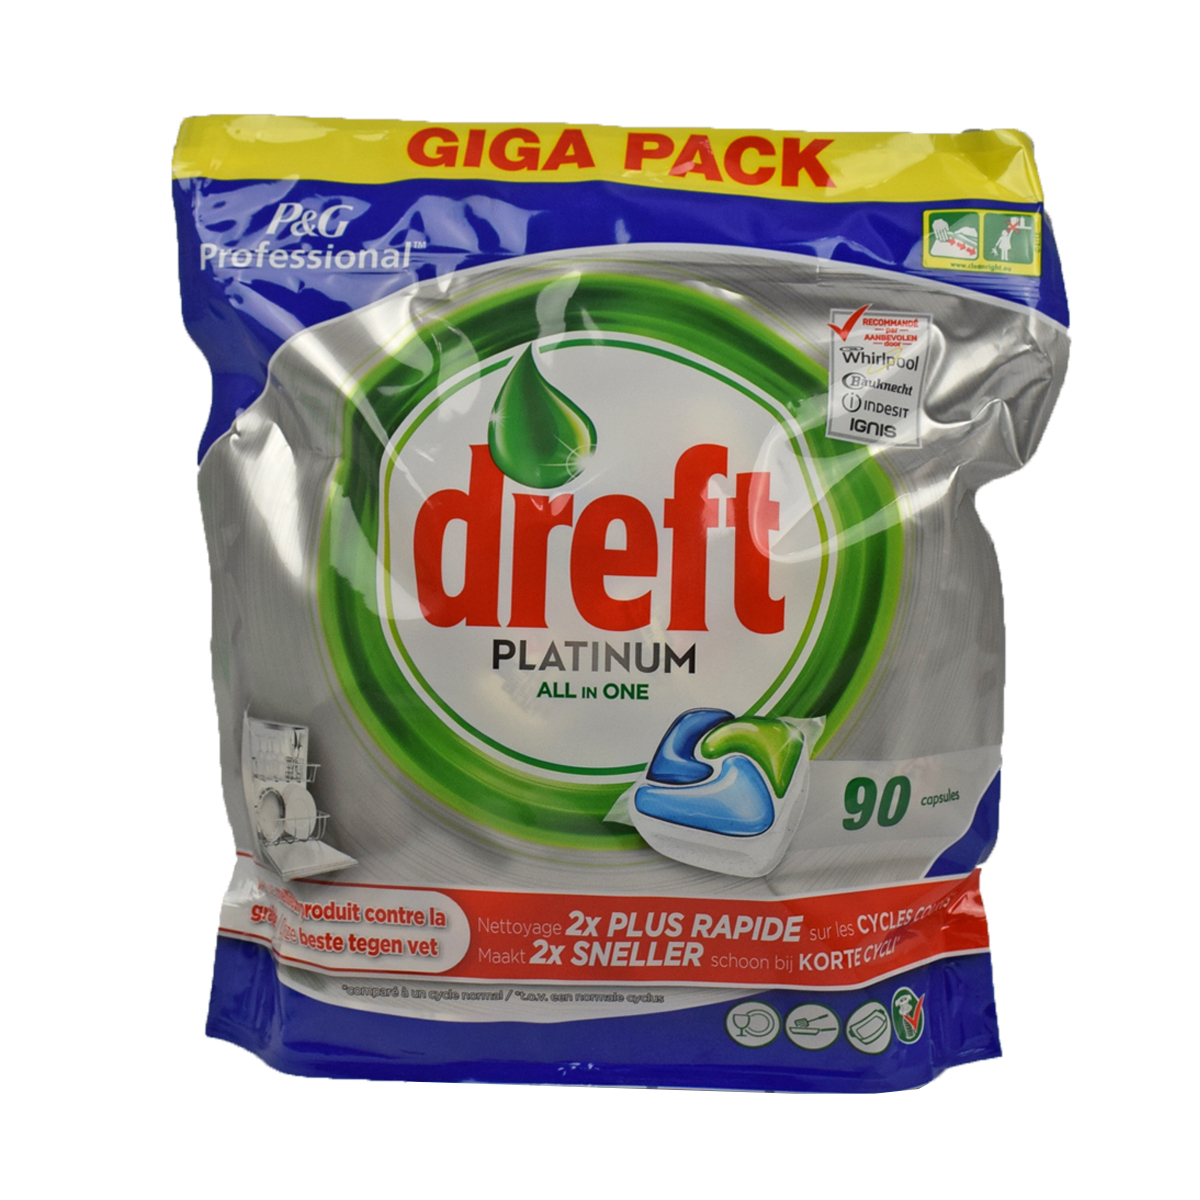 Dreft Platinum All In One 90 tabs